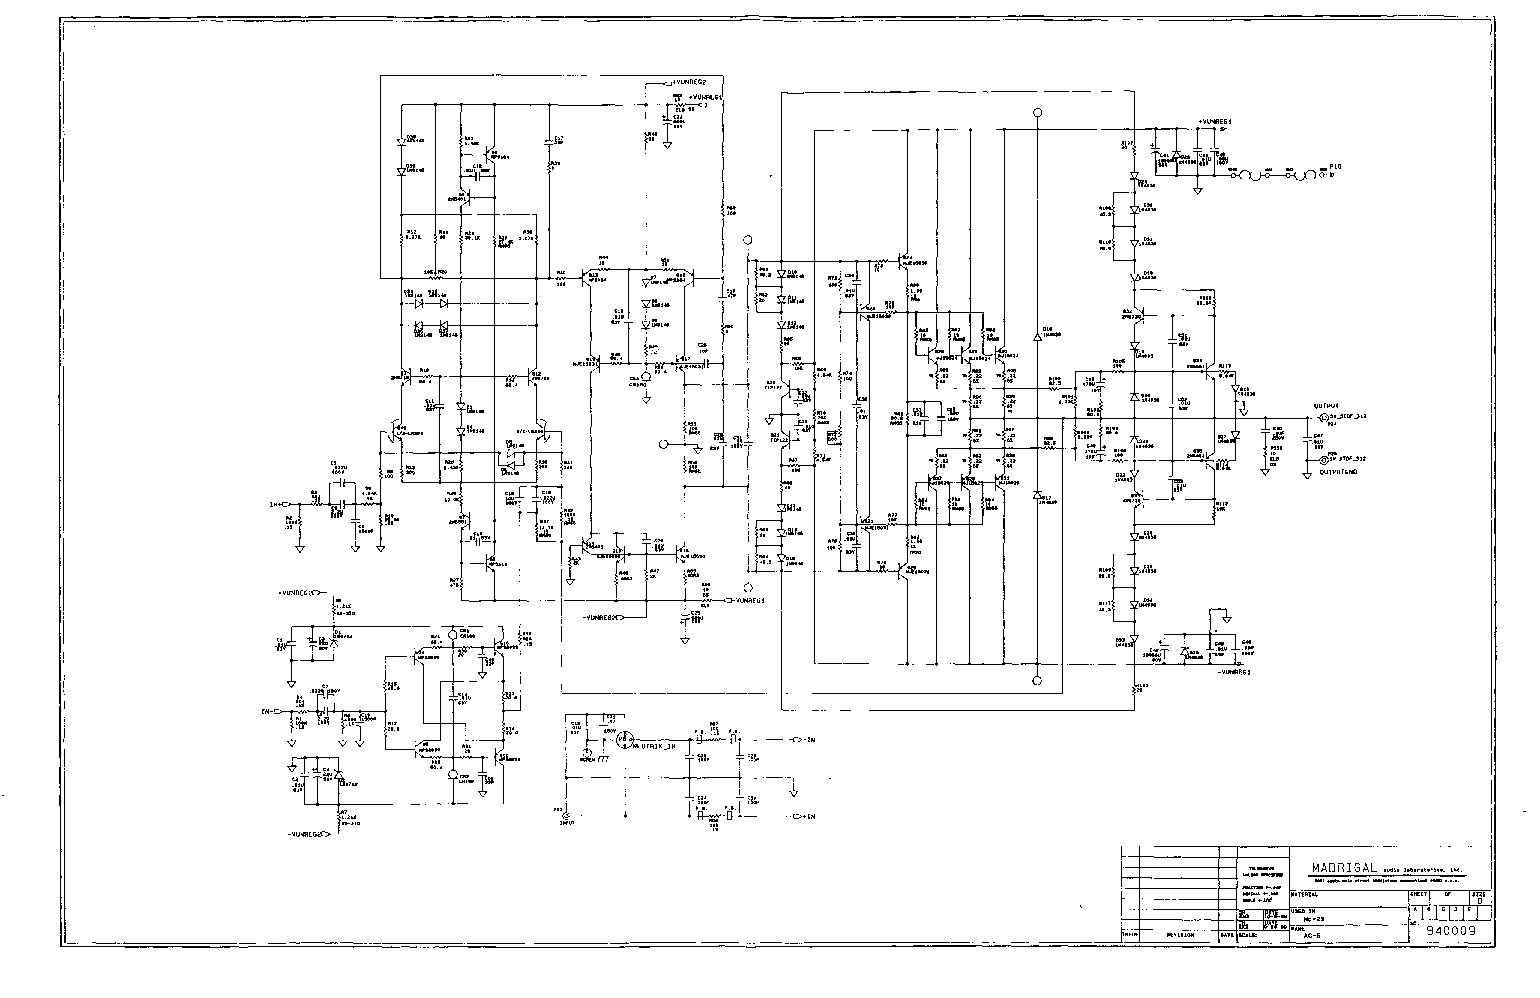 MARK-LEVINSON 29 service manual (1st page)